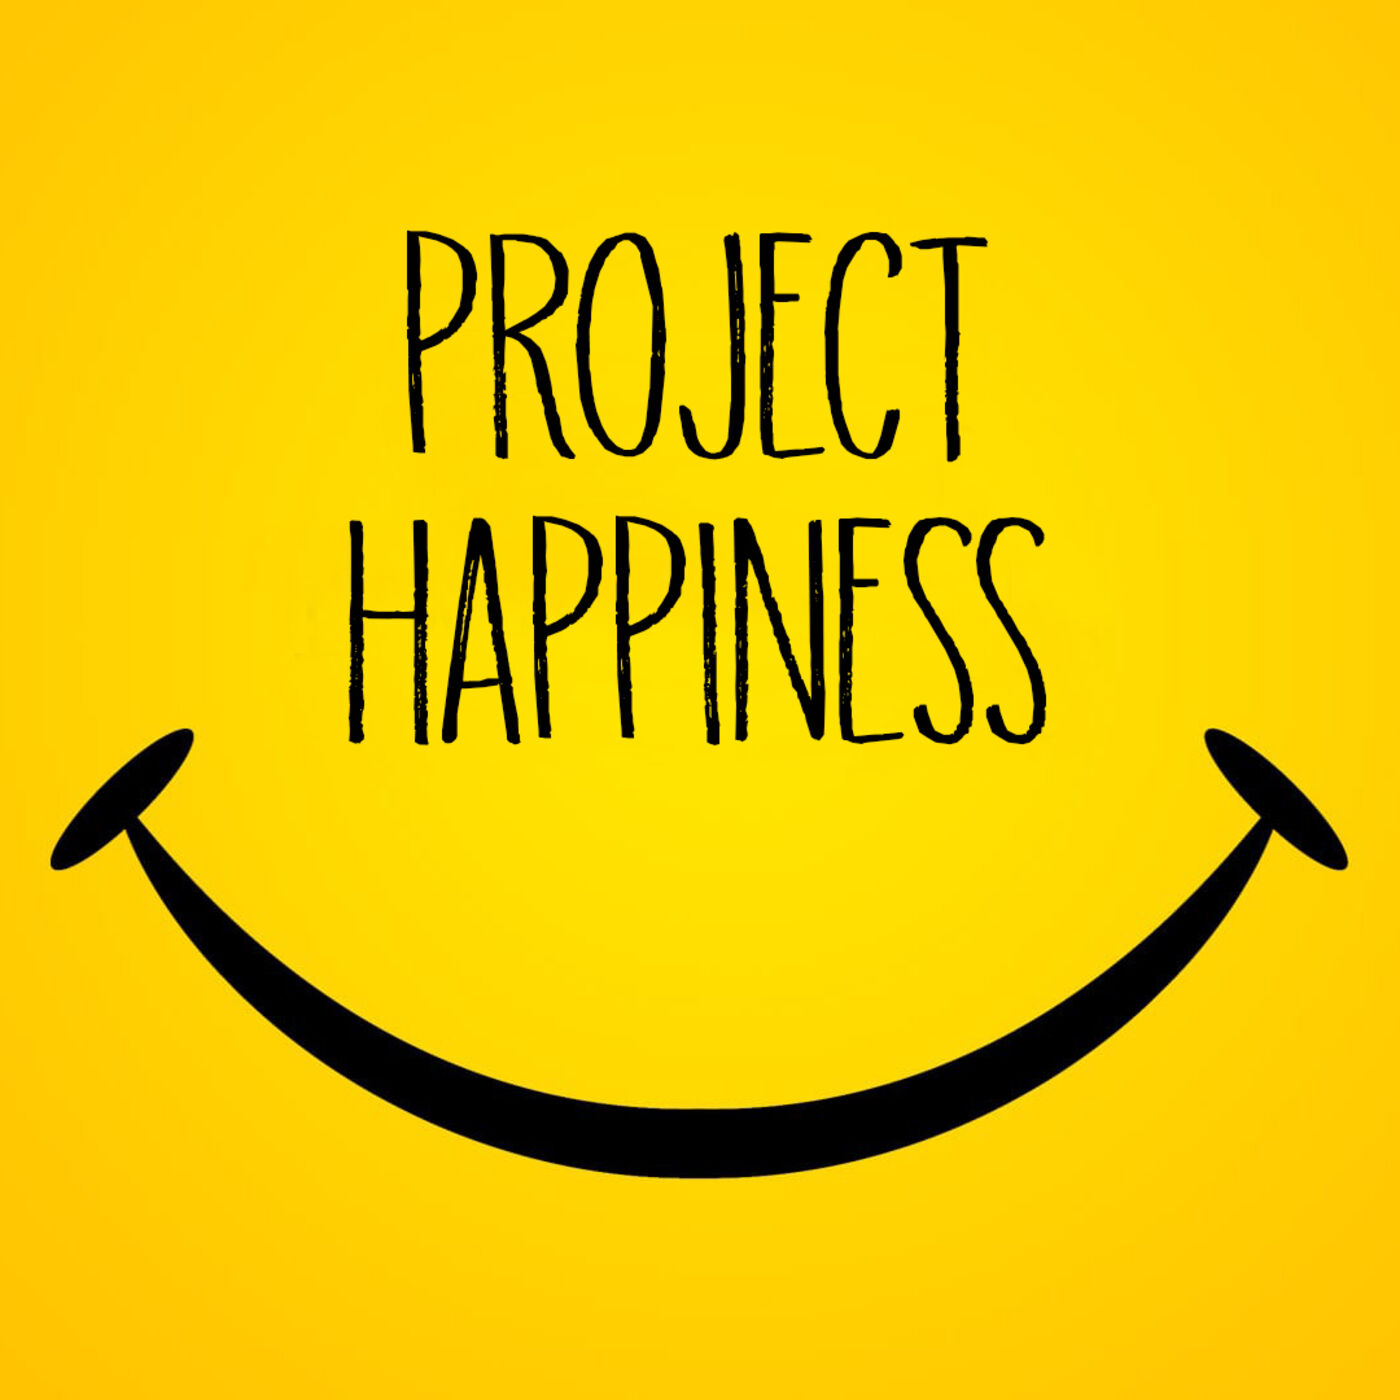 Projects Happiness - Attitude of Grattitude